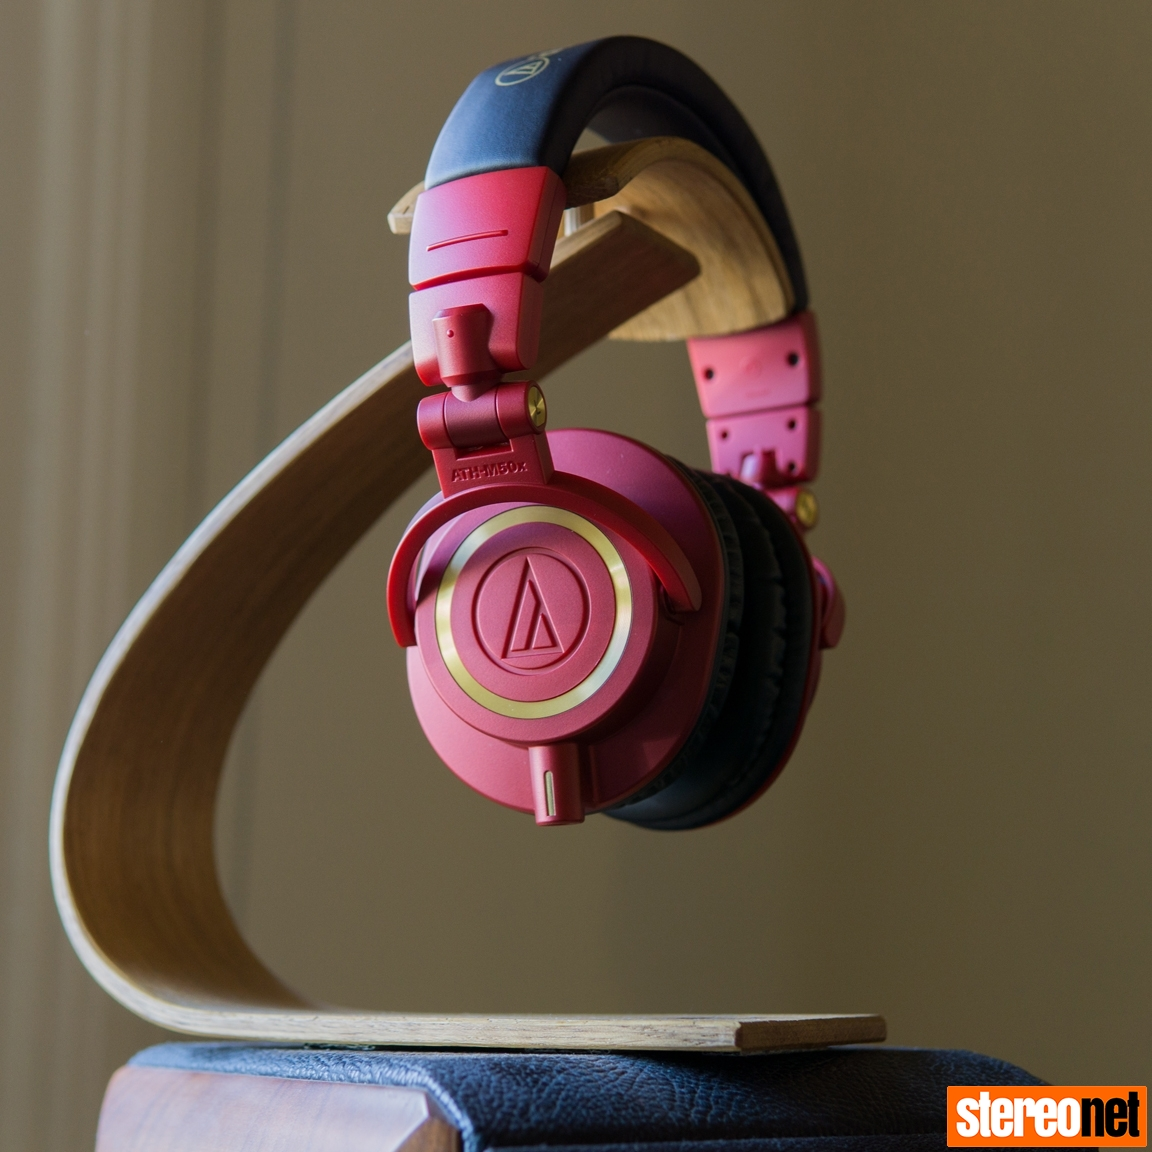 ATH-M50x Limited Edition Headphone Review